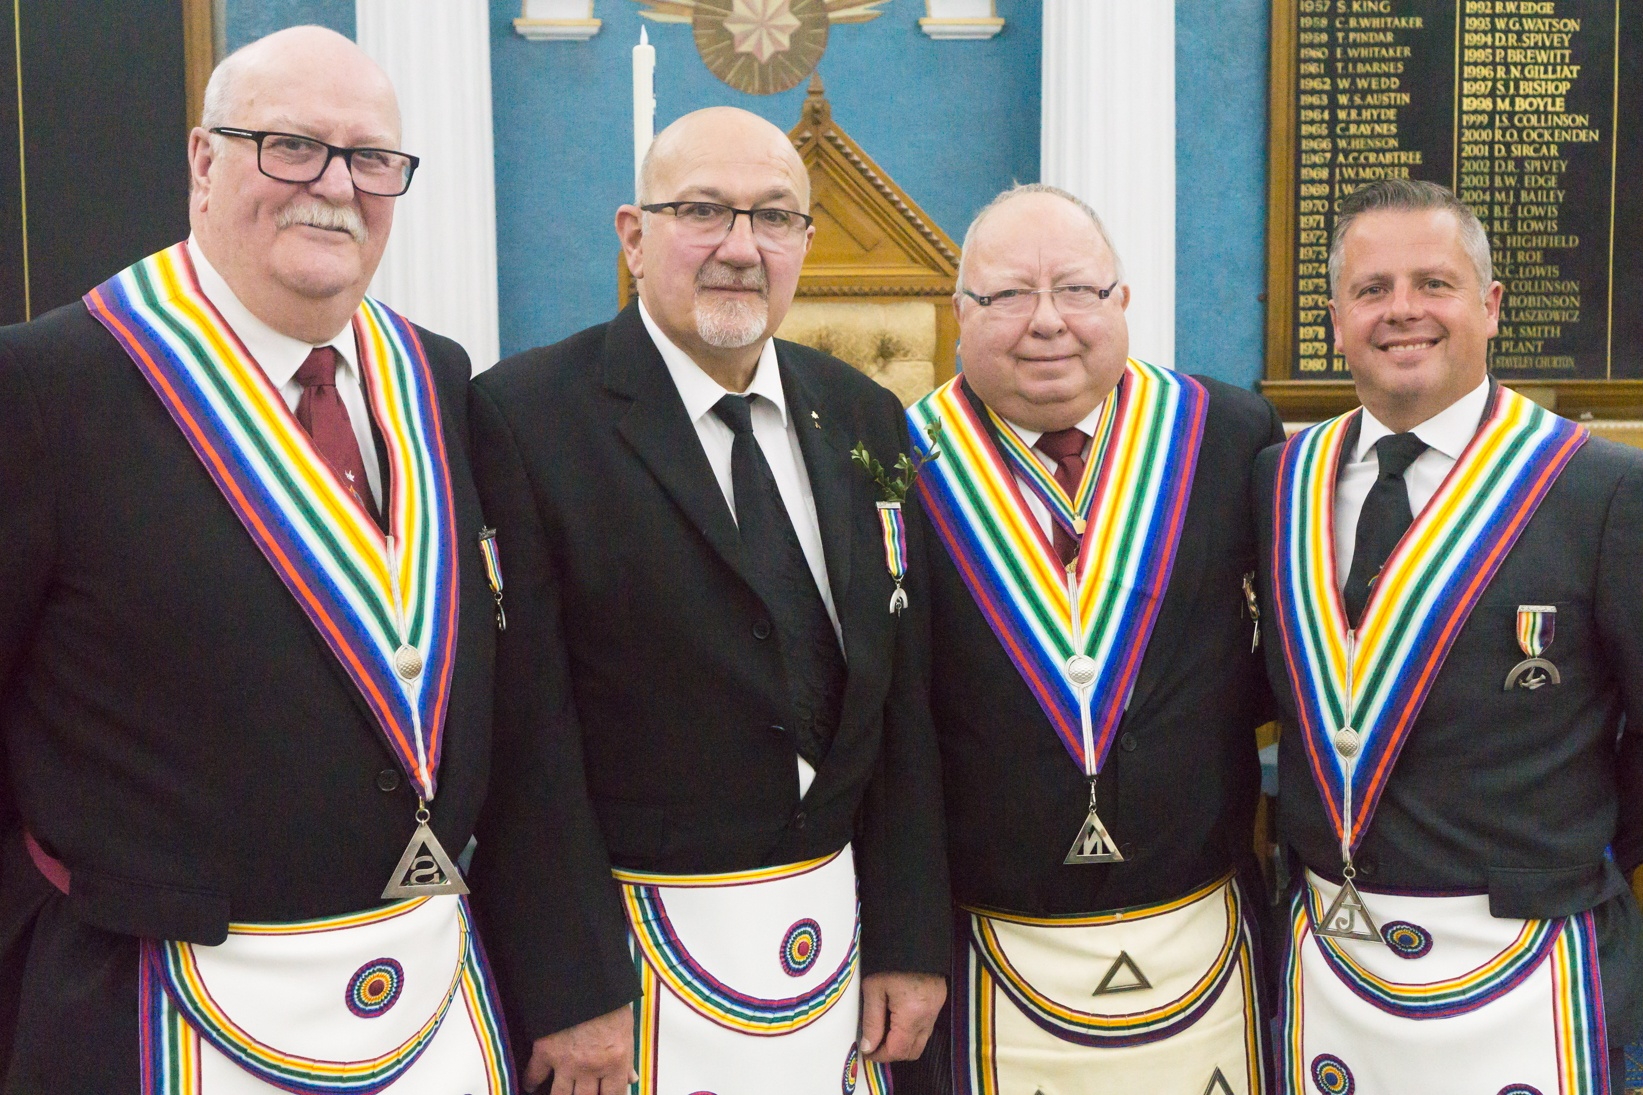 What a lovely way to spend an evening, Thorne Lodge of R.A.M. No.1004